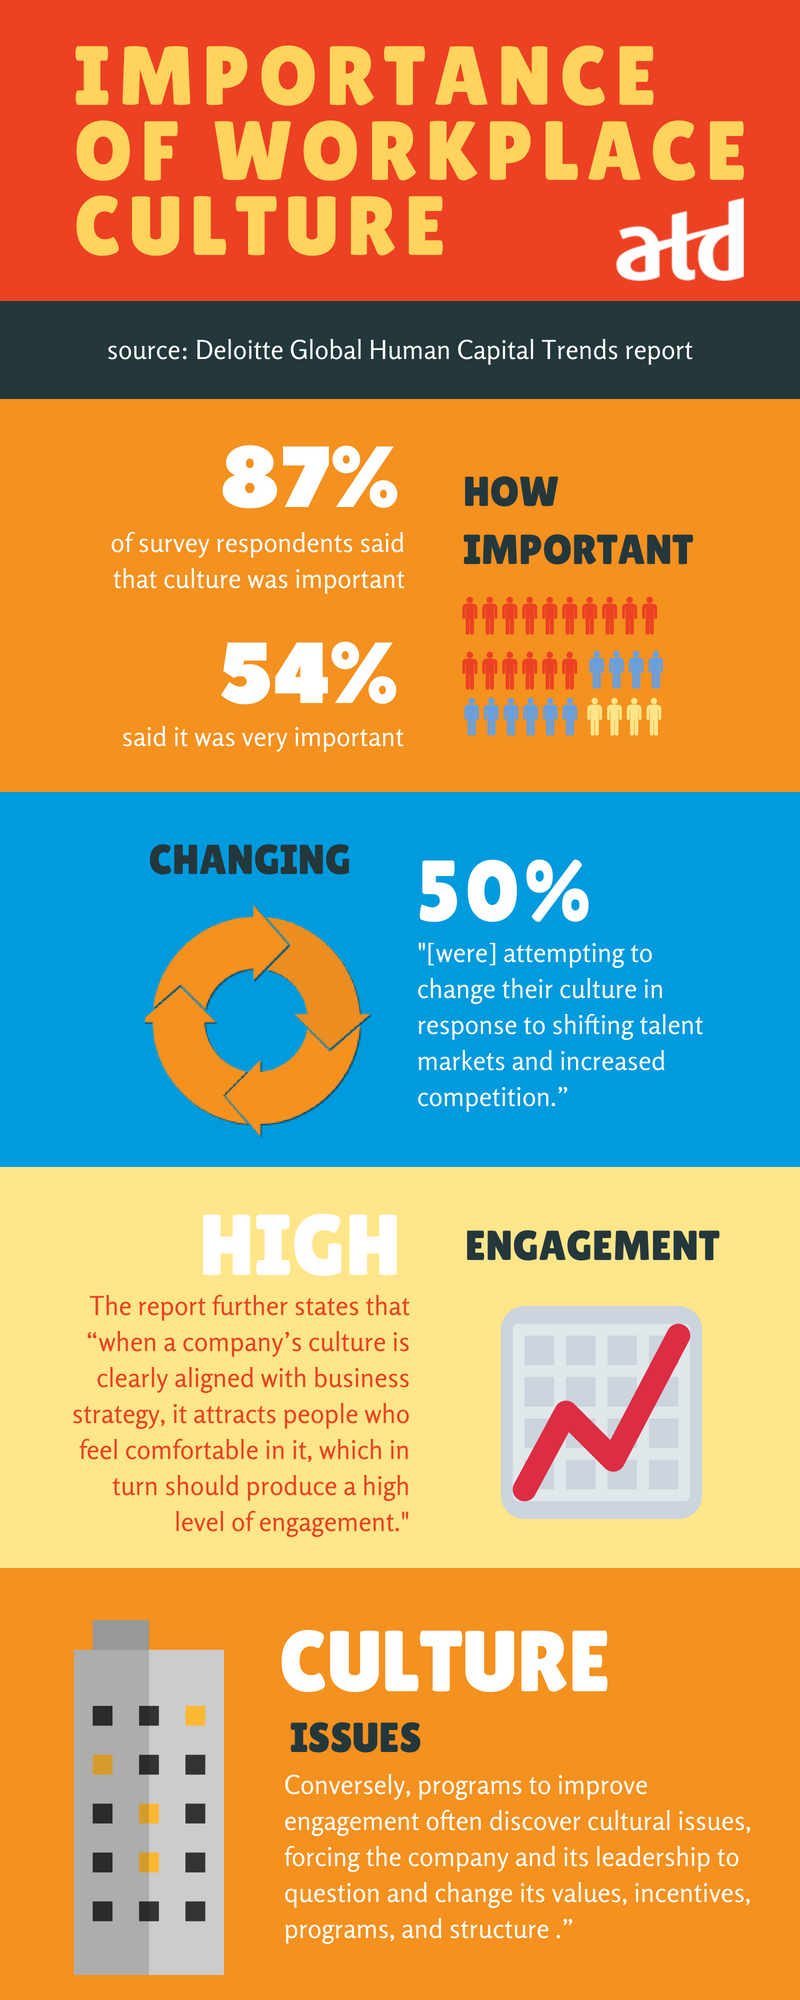 Importance of workplace culture